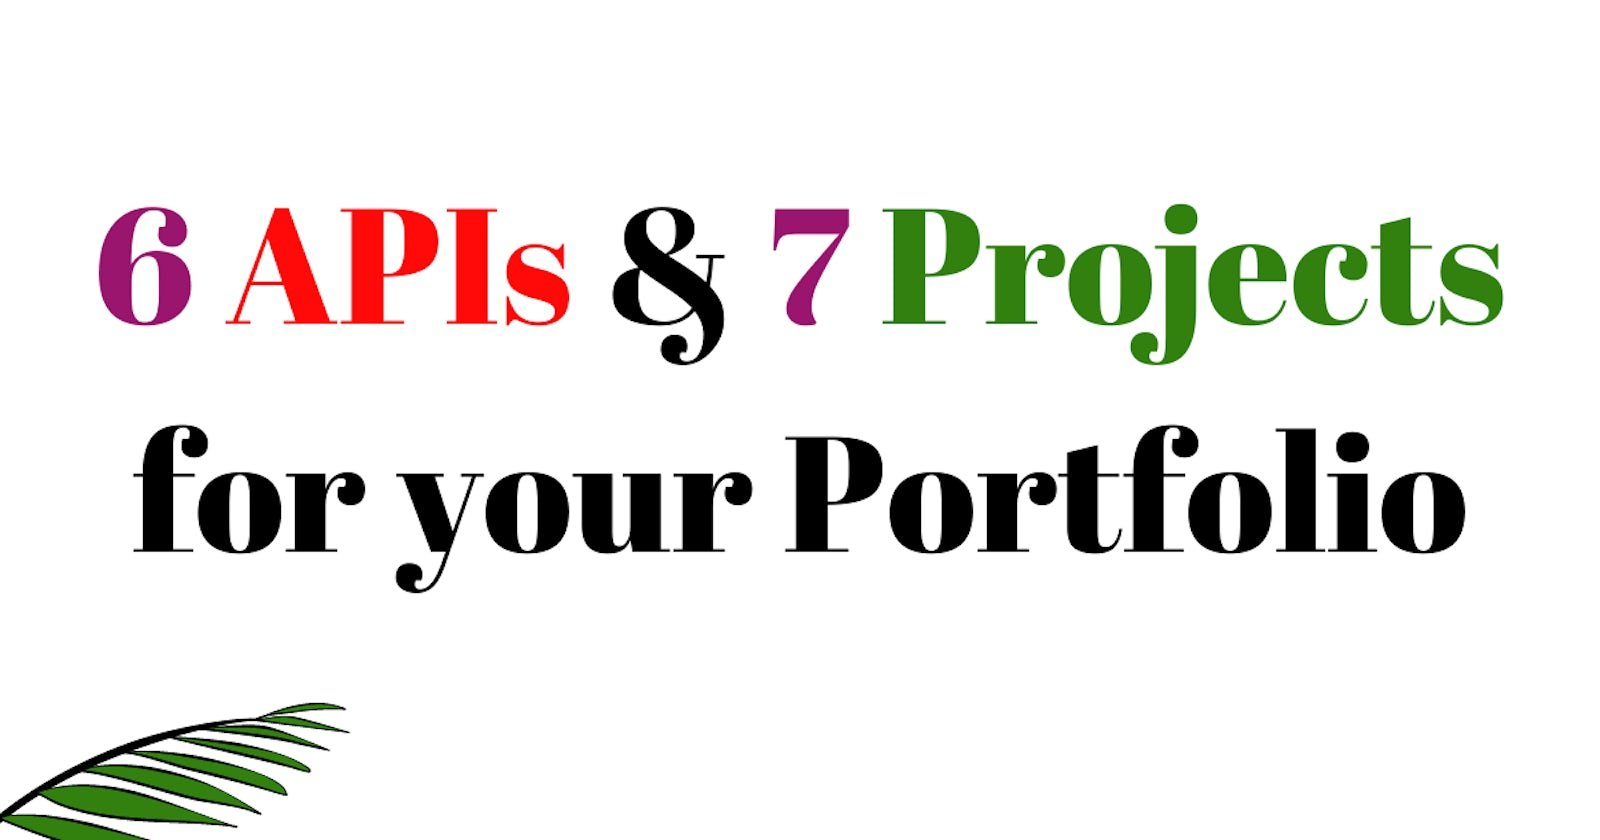 6 APIs & 7 Projects for your portfolio